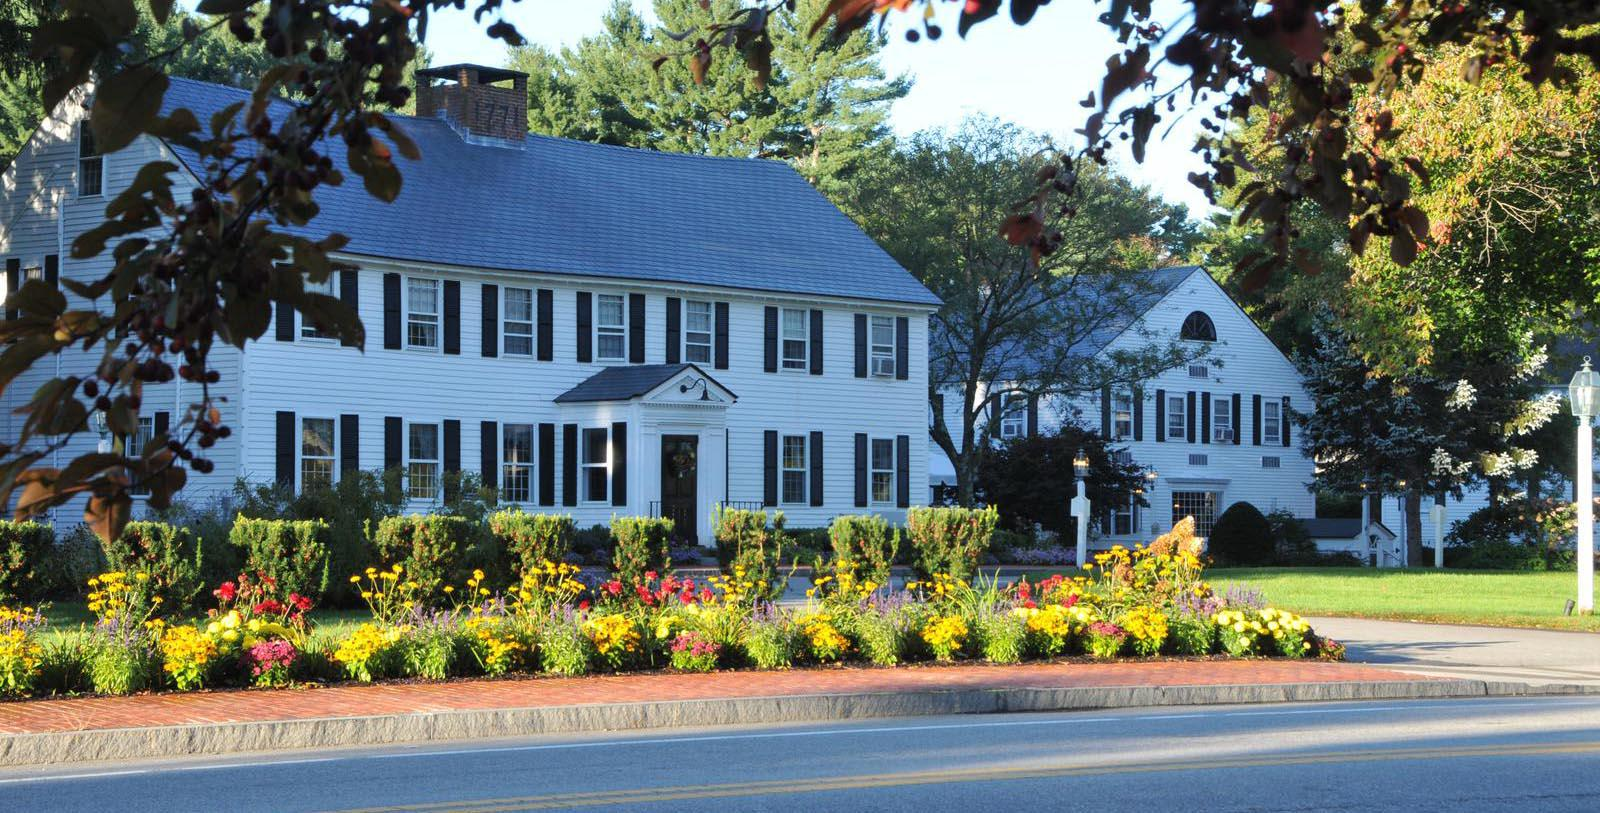 Image of Exterior of Publick House Historic Inn, 1771, Member of Historic Hotels of America, in Sturbridge, Massachusetts, Overview